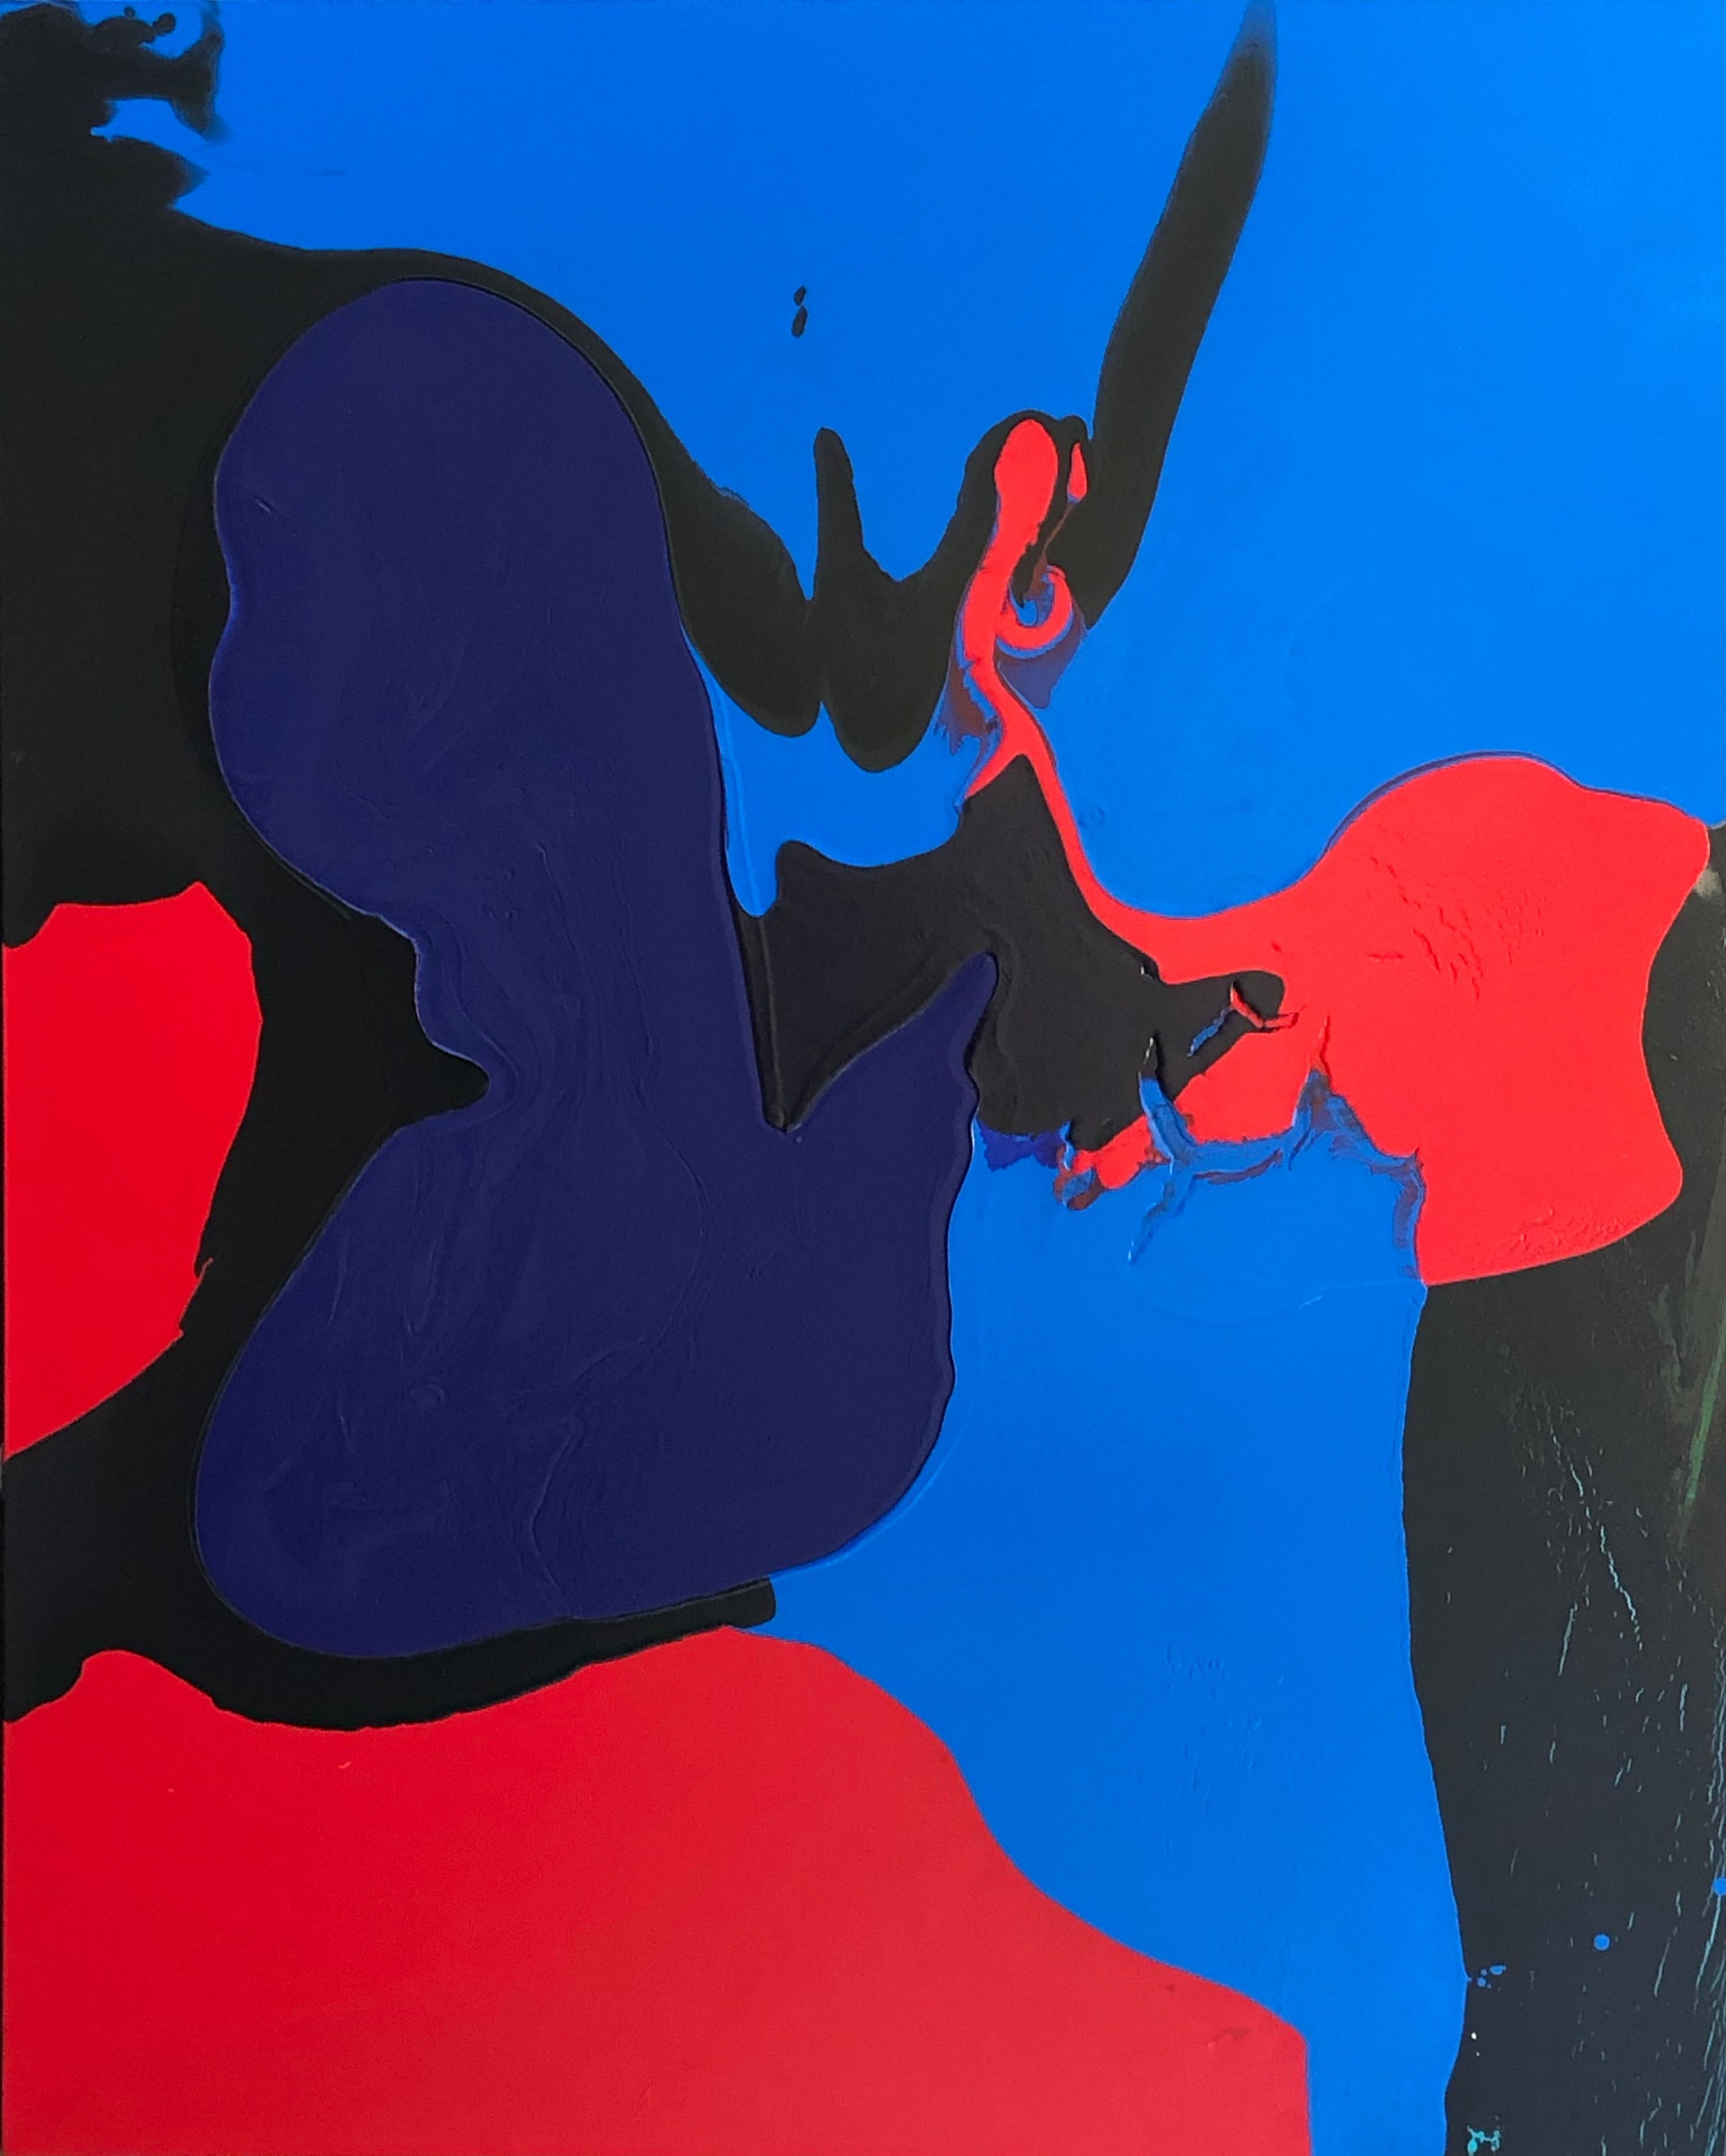 Deluge abstract painting by Glenn Green, blue, black, red acrylic on canvas